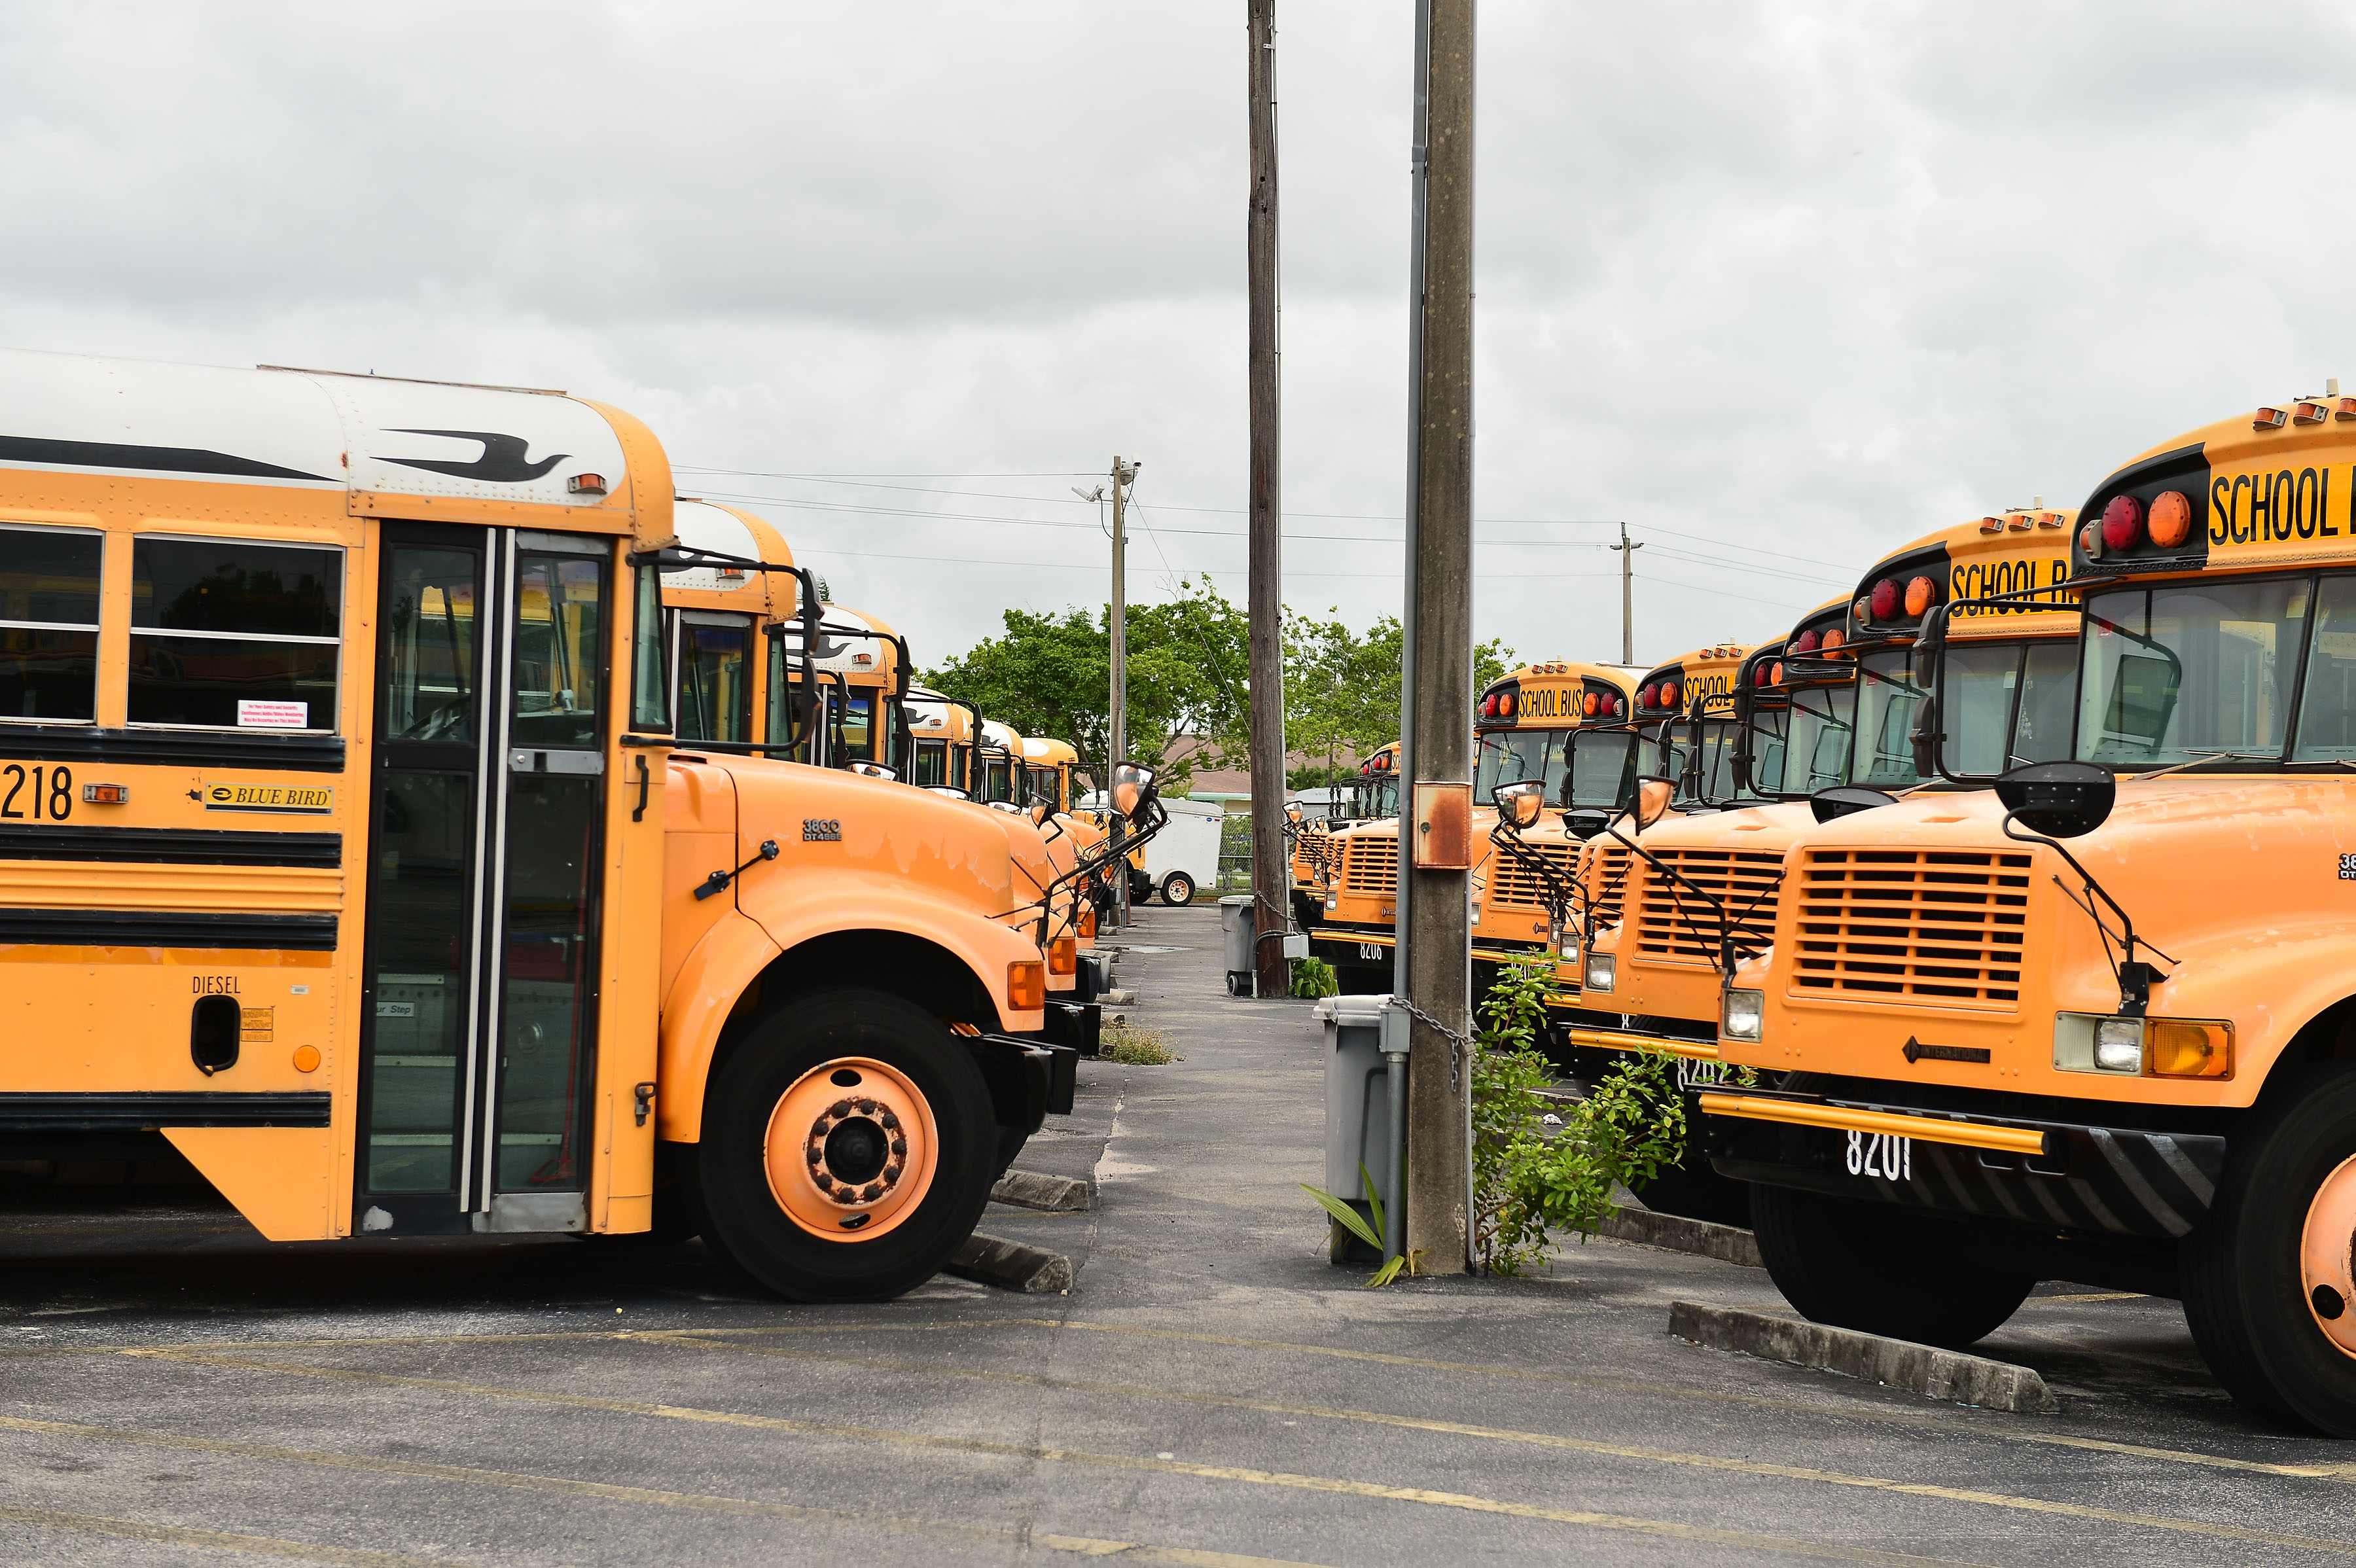 A fleet of Broward County school buses are parked in a lot in Pembroke Pines, Florida, on July 21.